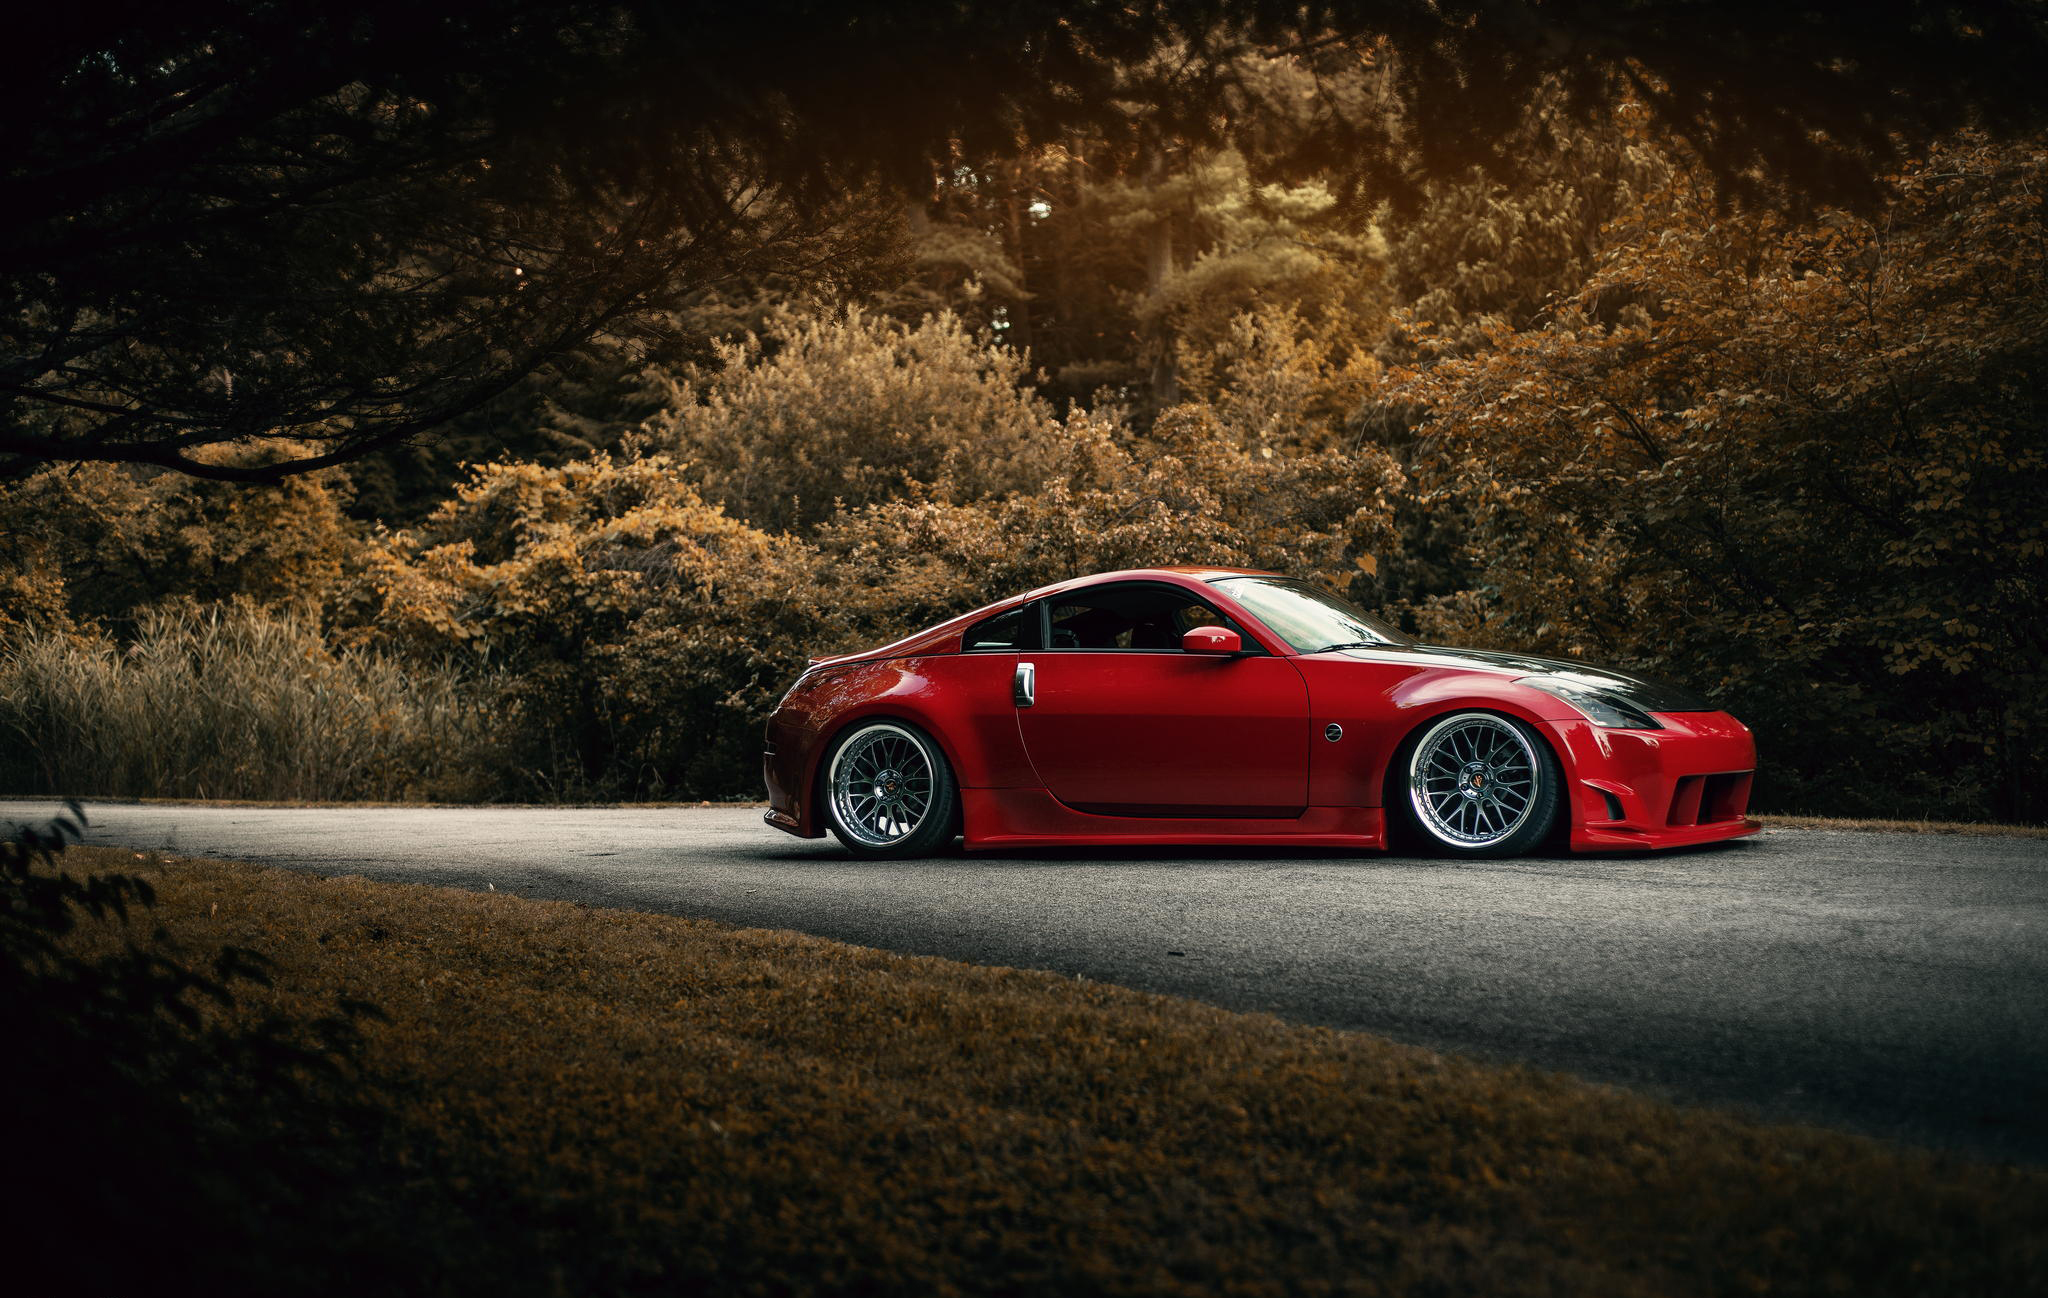 2048x1298 - Nissan 350Z Wallpapers 26